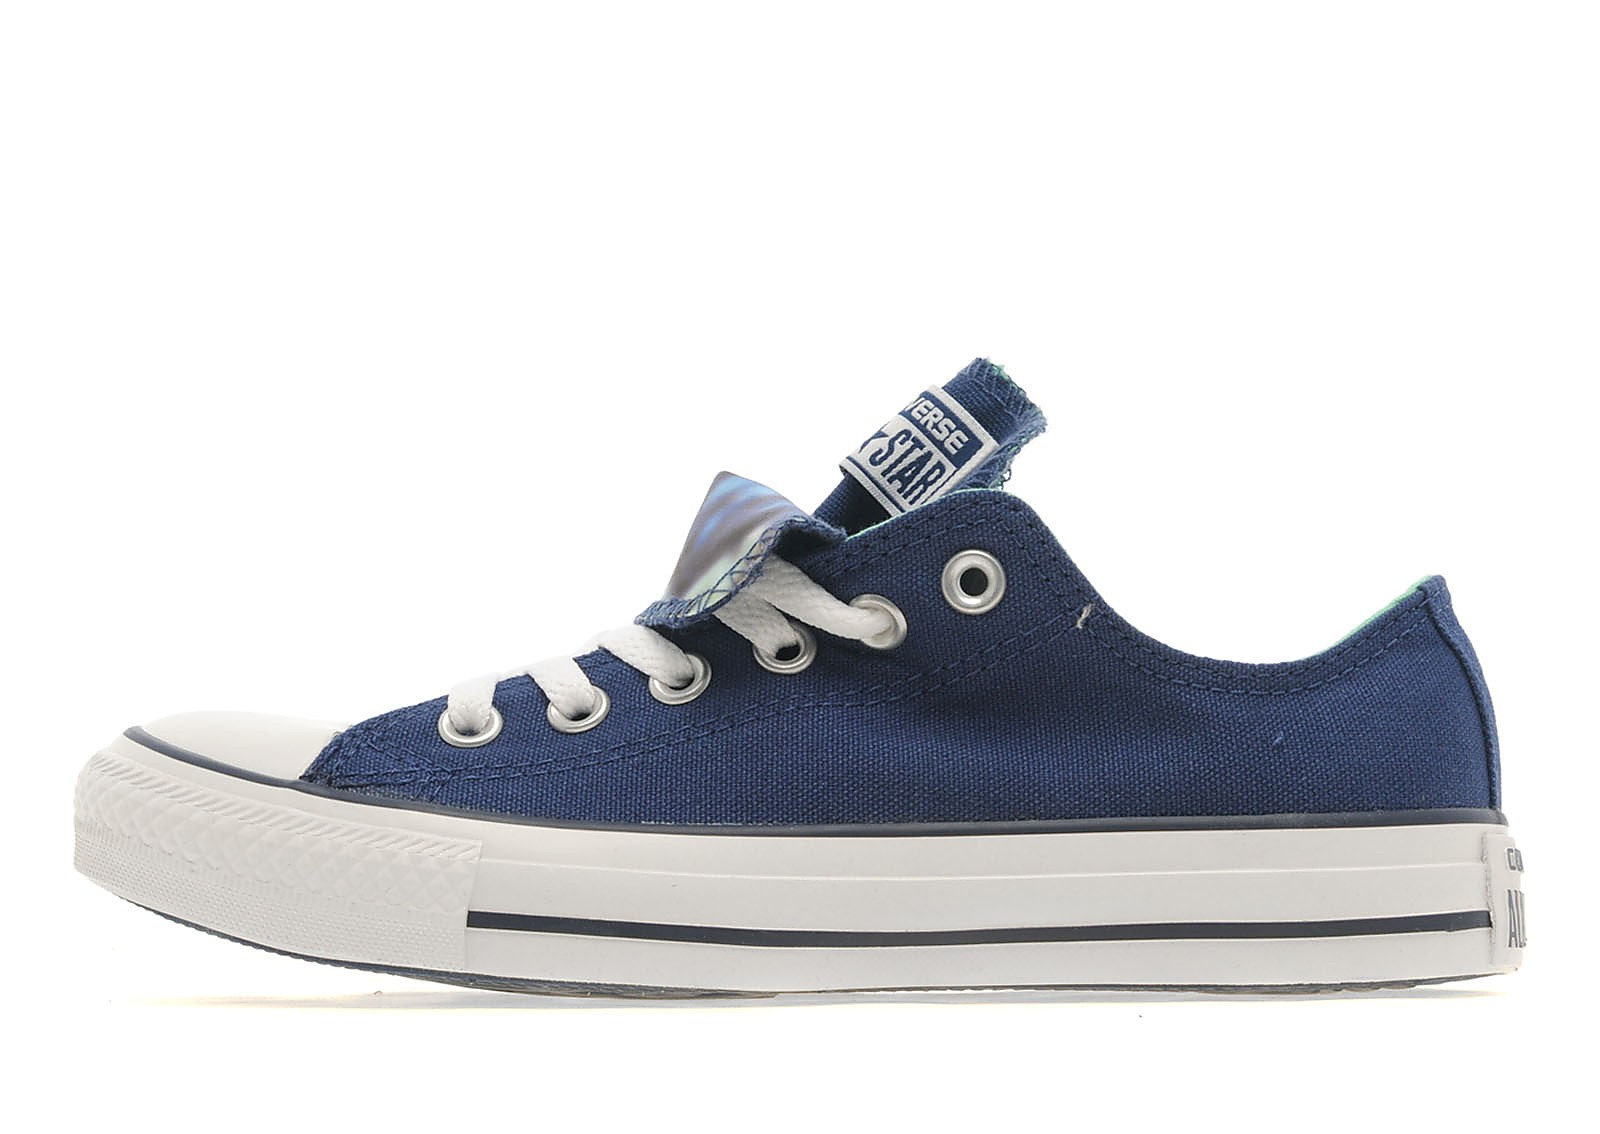 Converse All Star Double Tongue Tie Dye